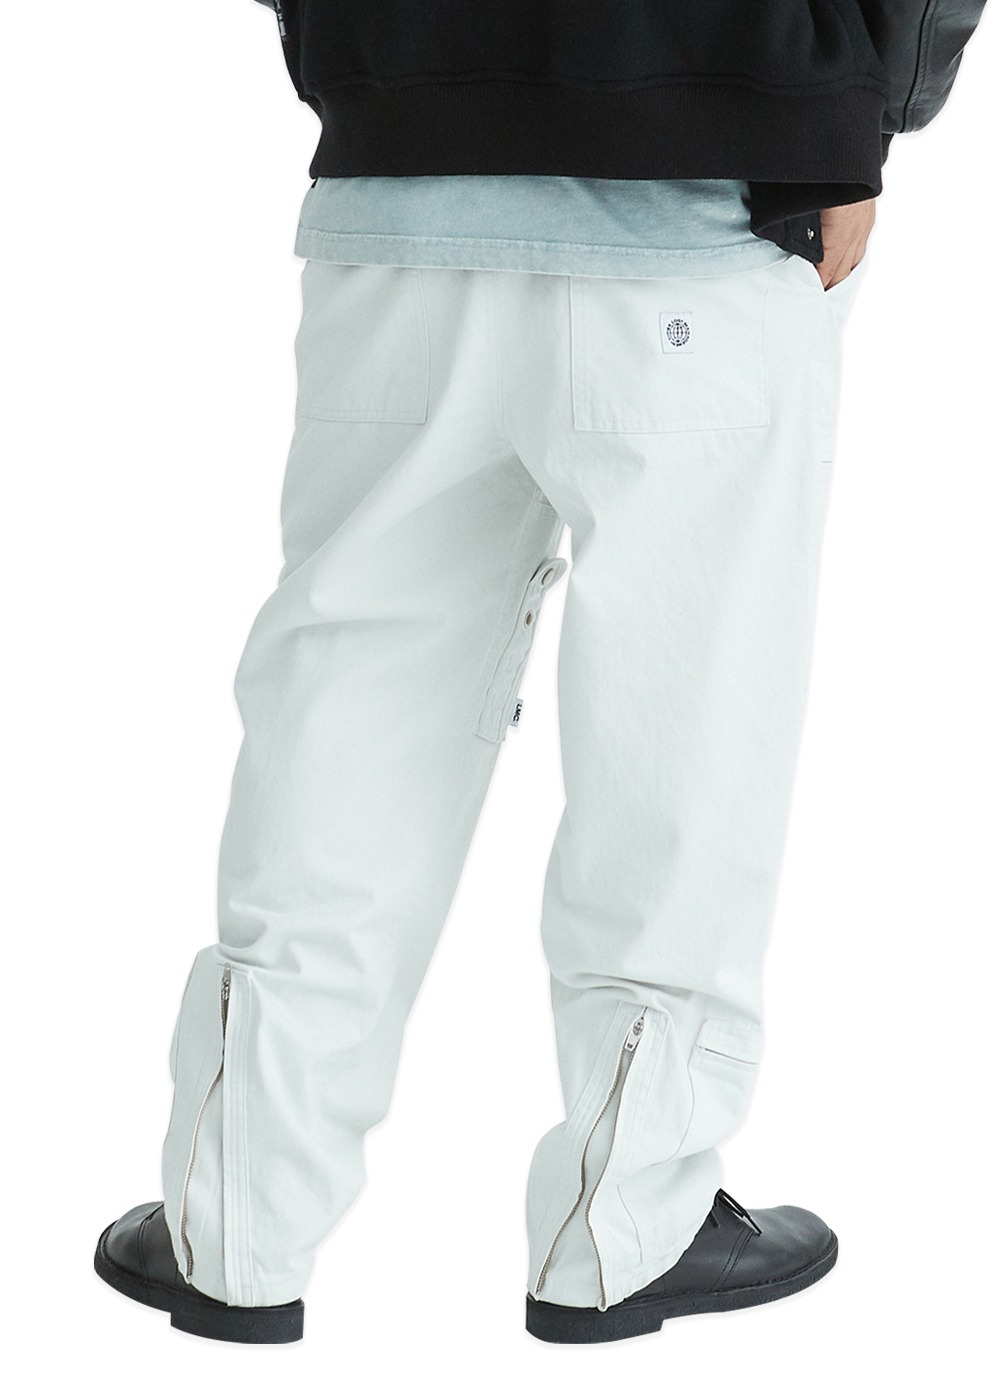 LMC BDG FLIGHT PANTS white